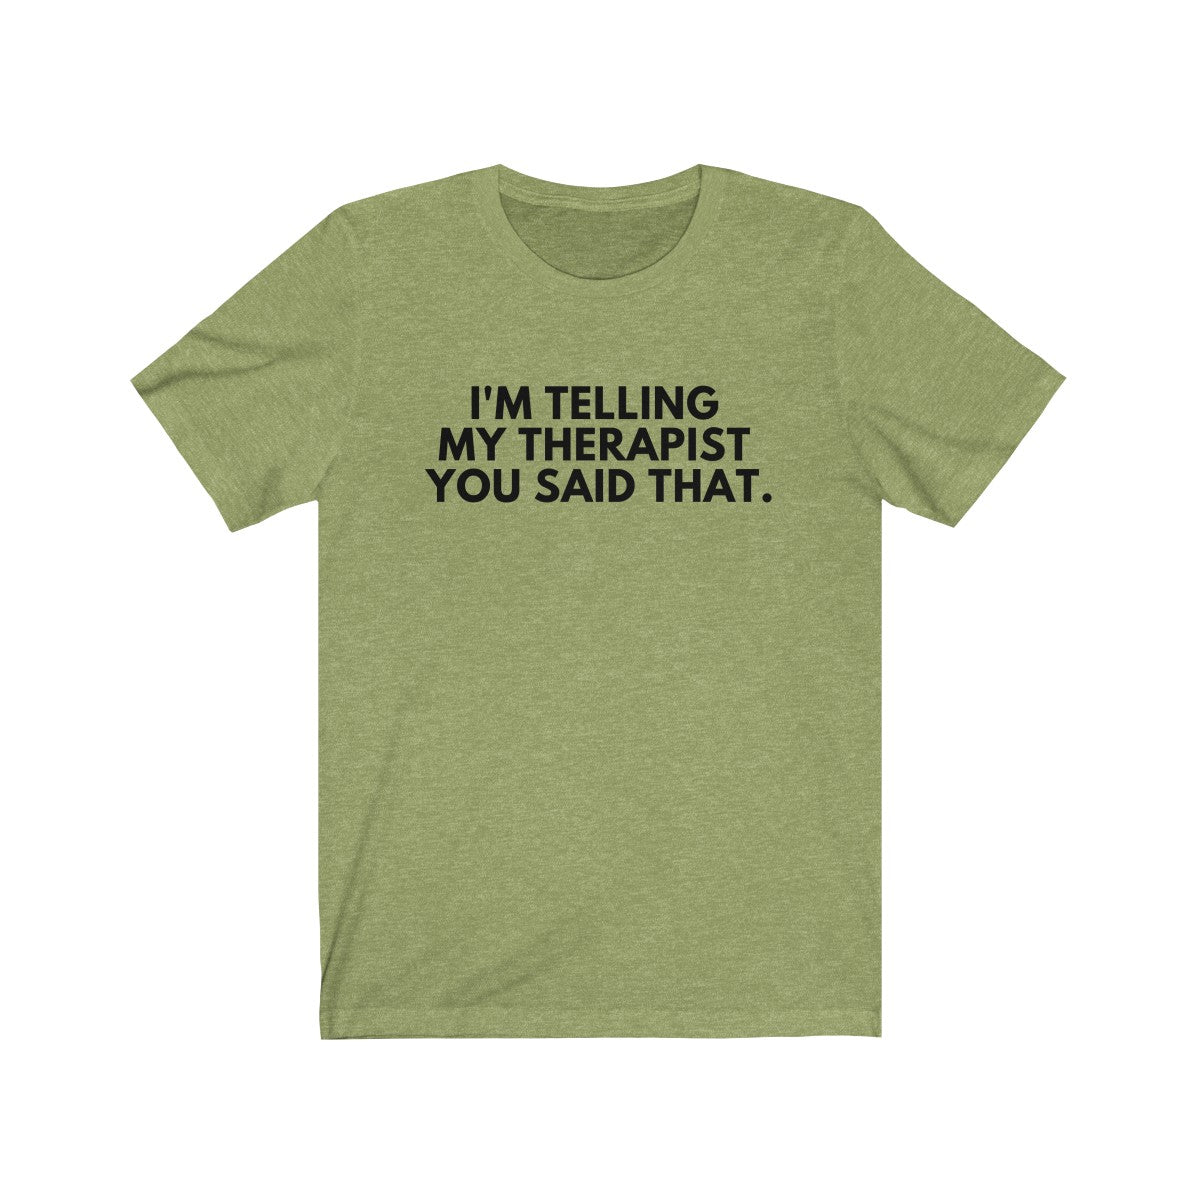 I'm Telling My Therapist You Said That Shirt - Black Text